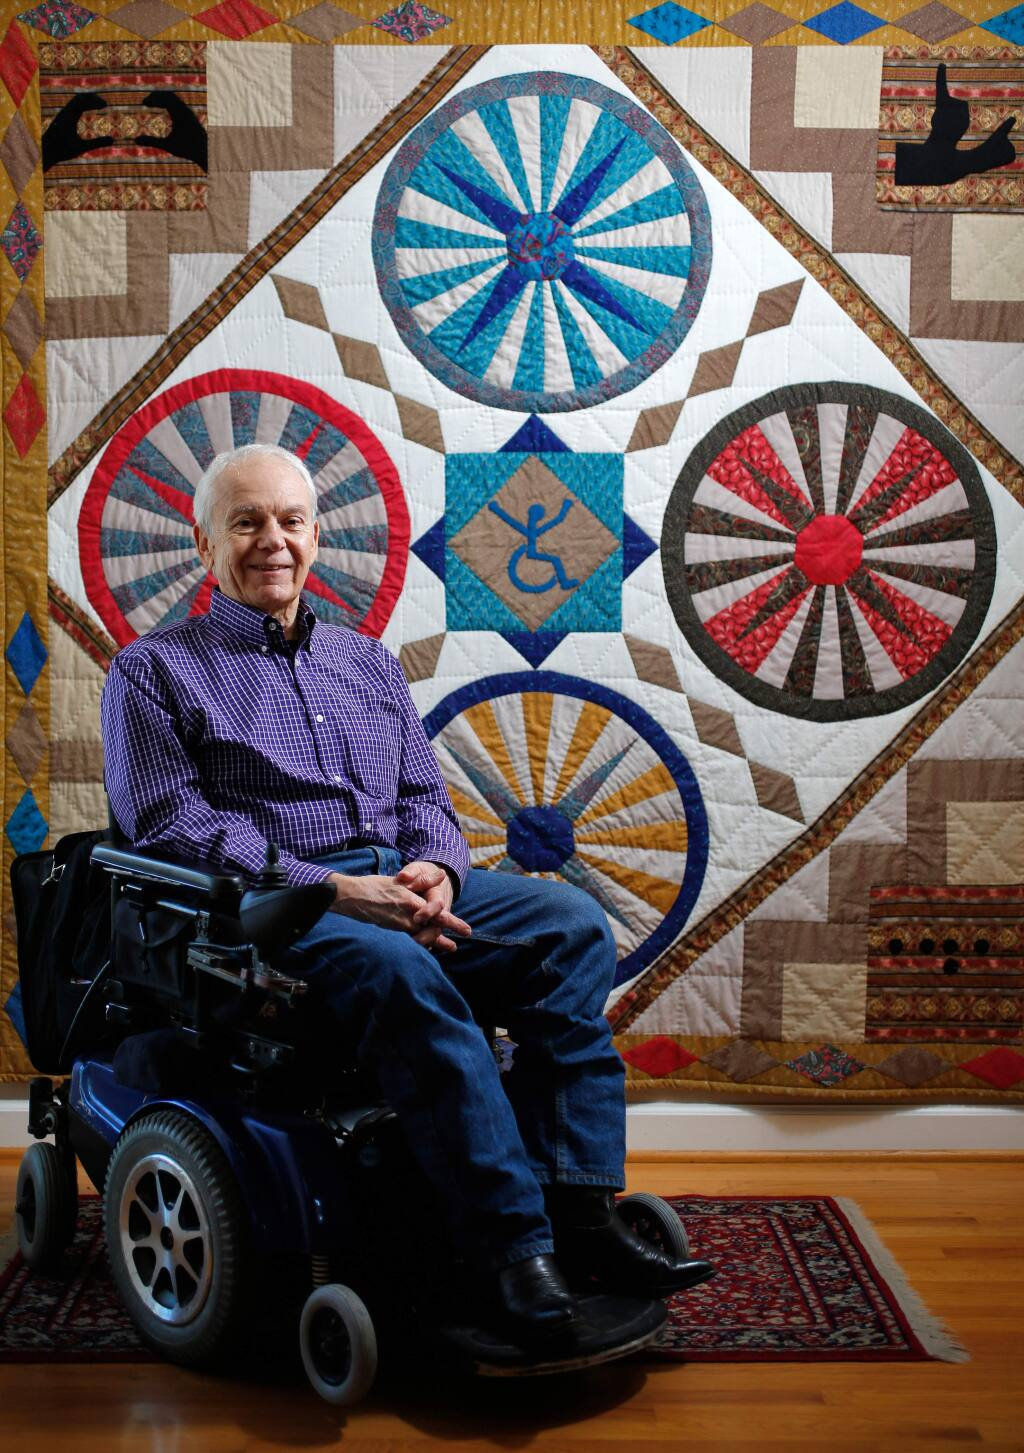 Disability advocate Anthony Tusler in front of a disability-themed quilt at his home in Penngrove on Friday, Nov. 6, 2015. (Alvin Jornada / The Press Democrat)